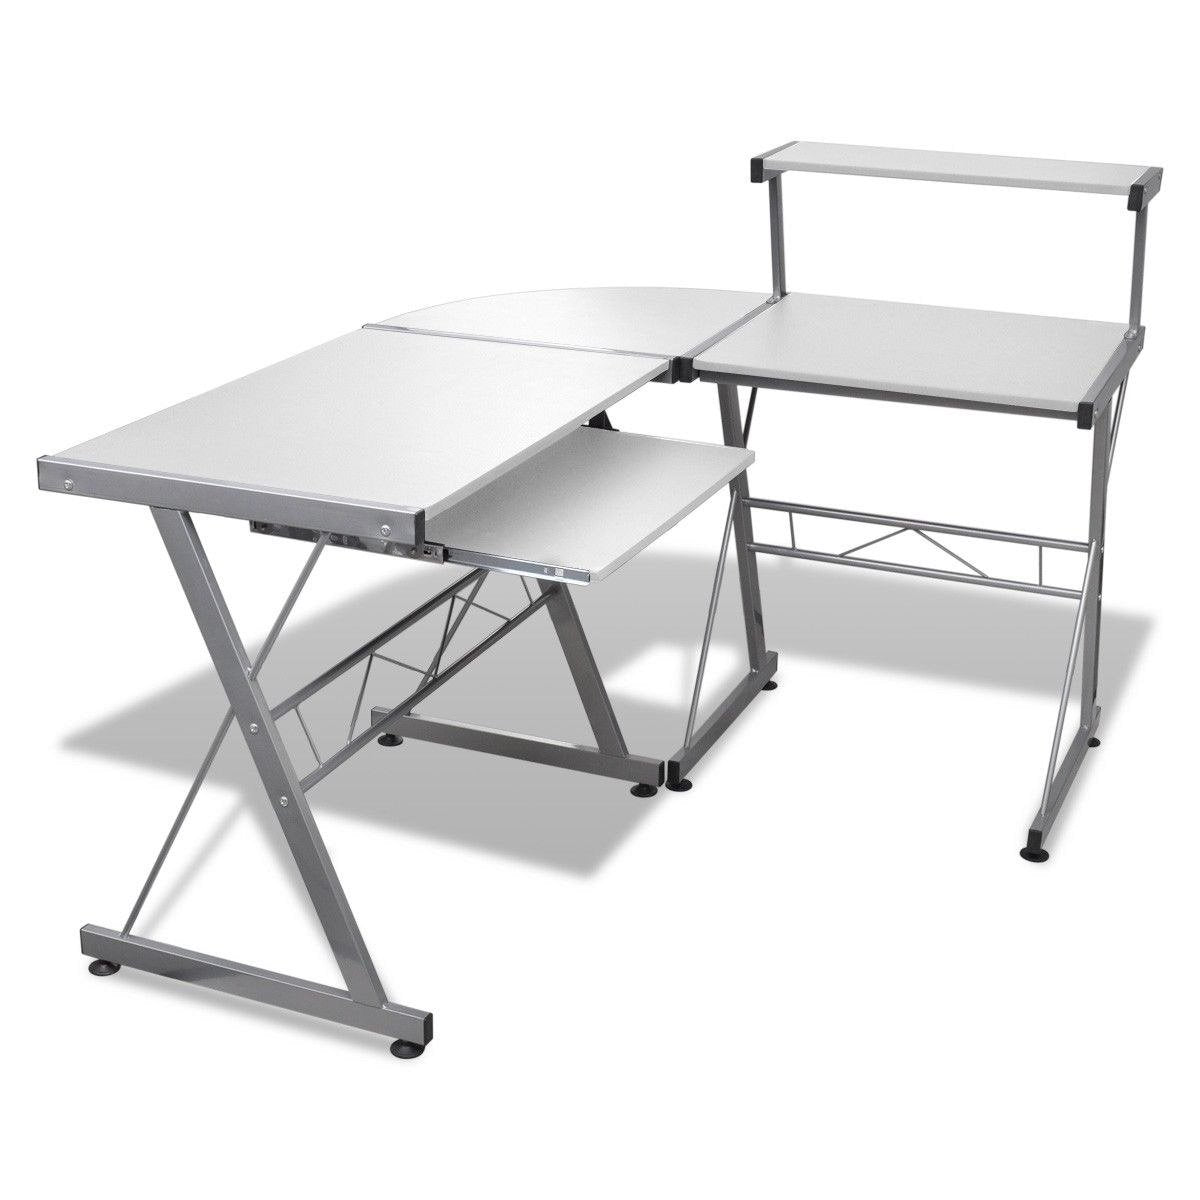 Artiss Corner Metal Pull Out Table Desk - White - Evopia